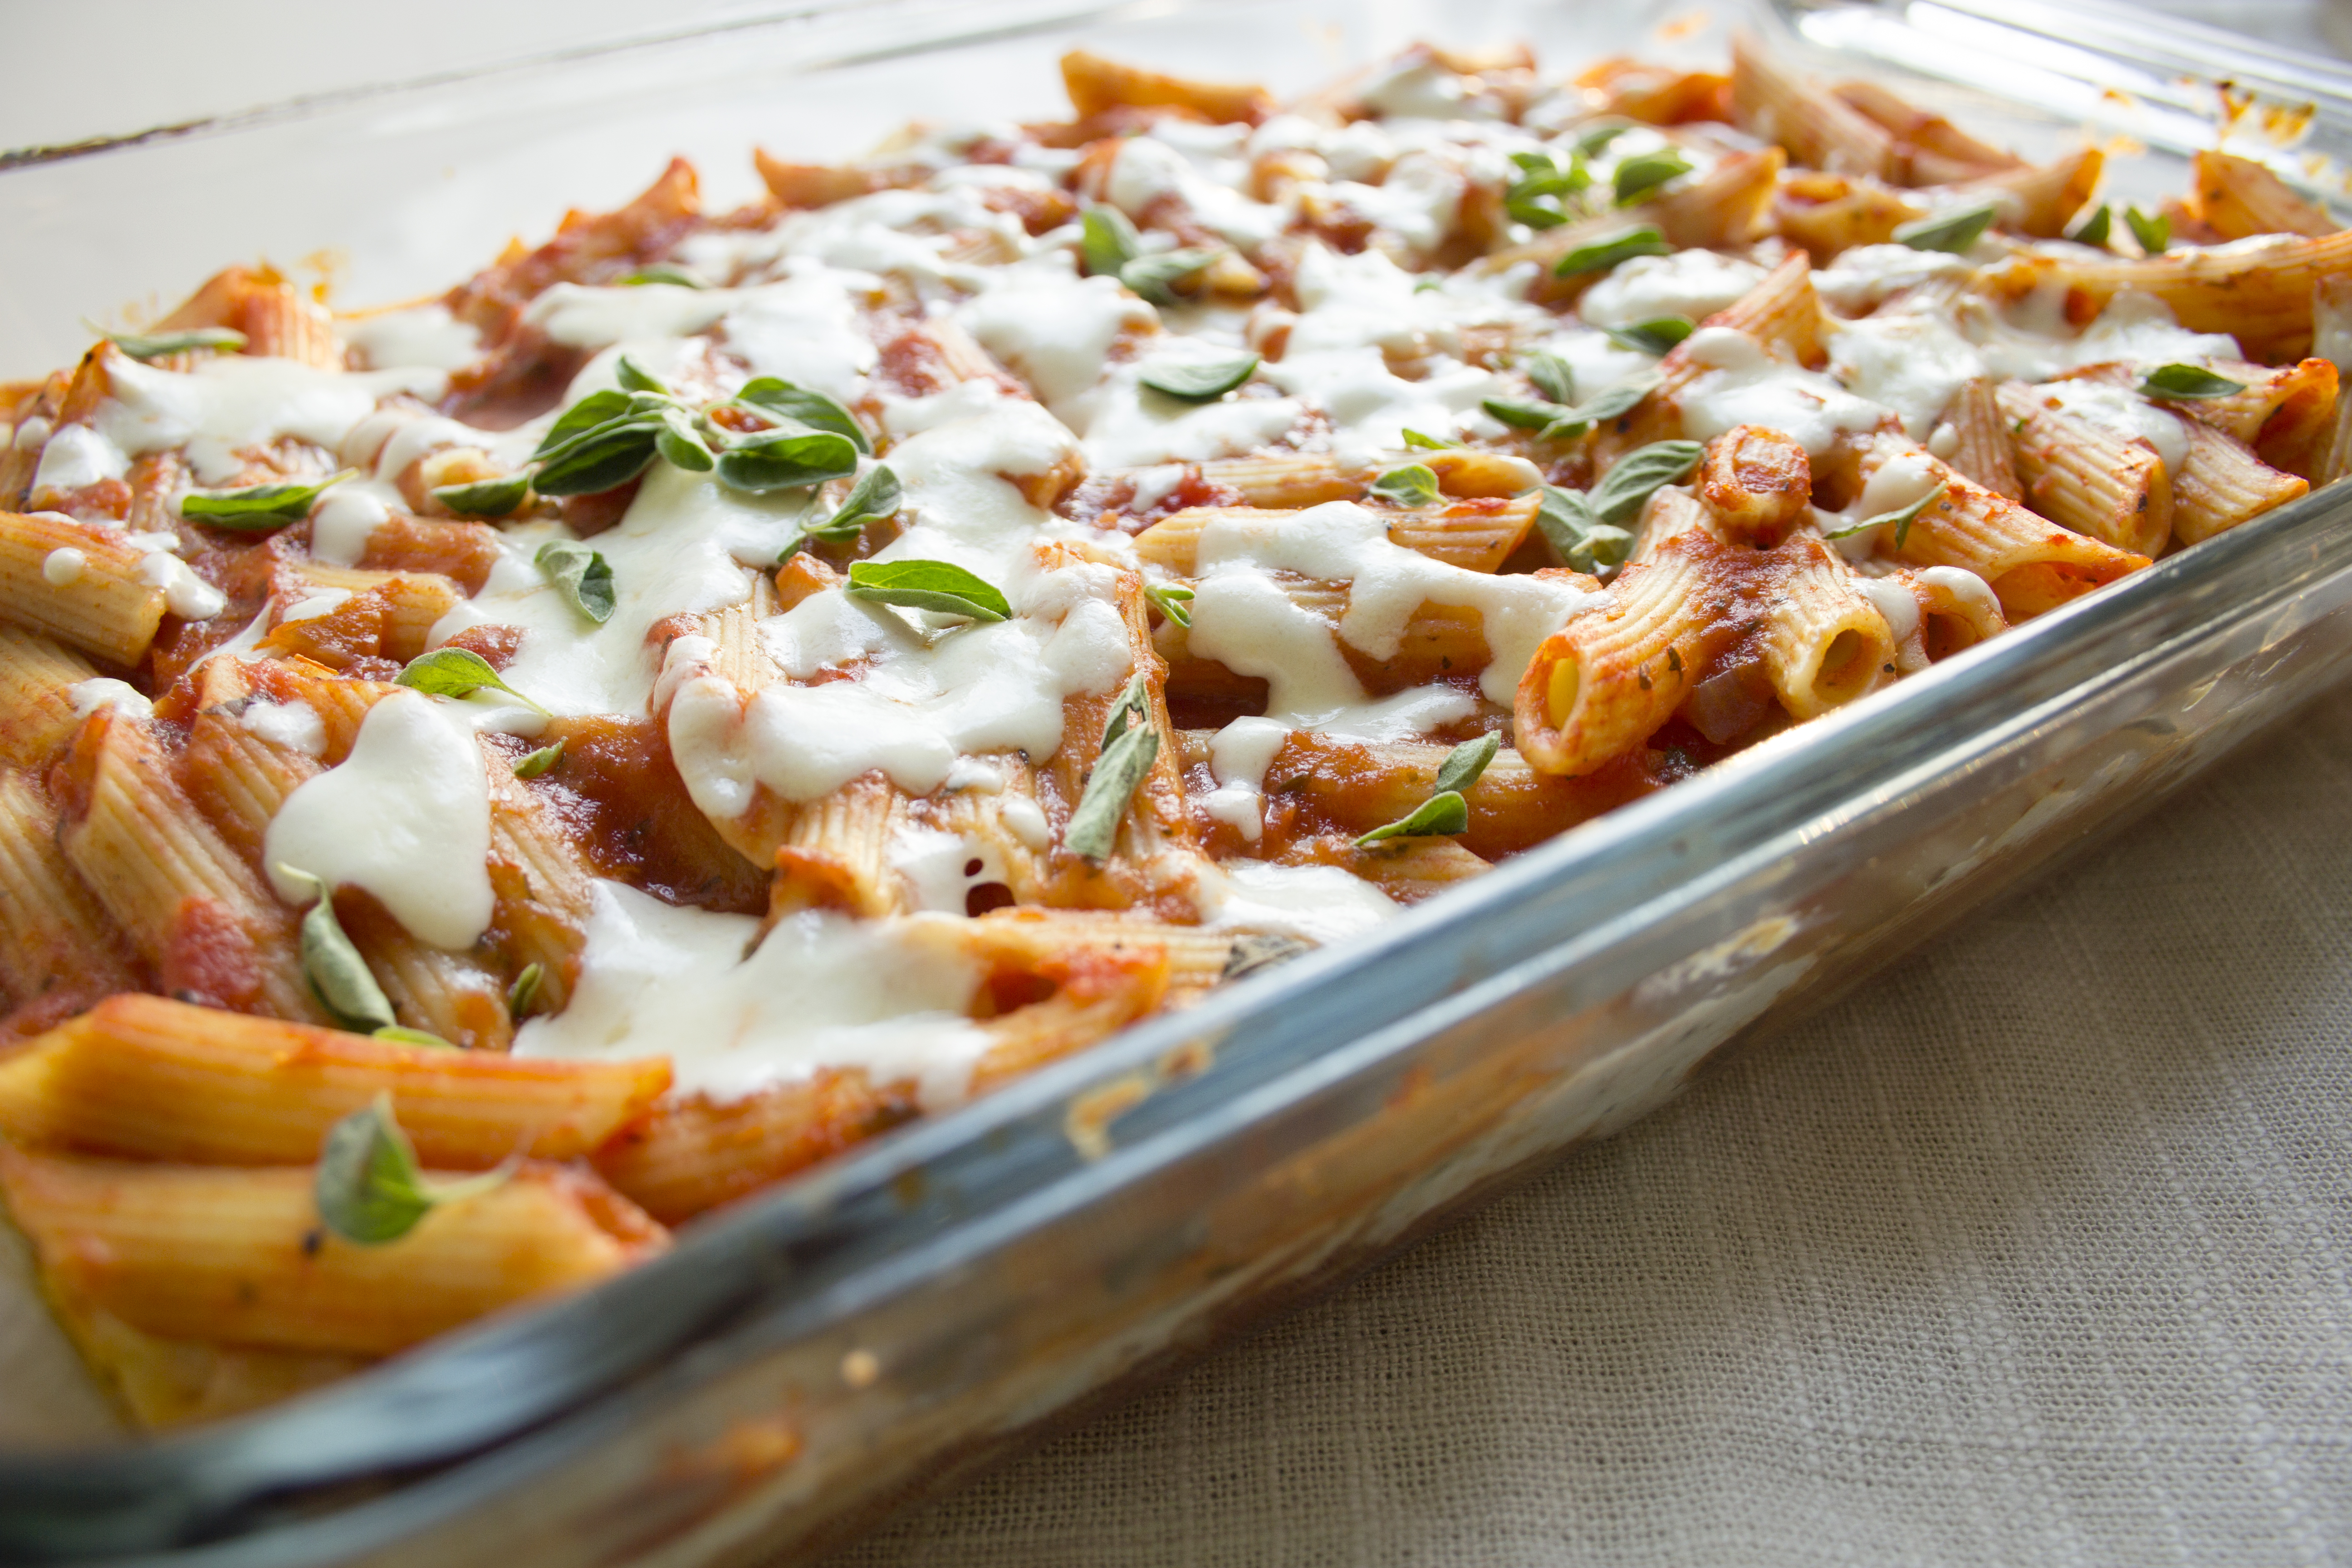 lasagna casserole baked in a casserole dish topped with cheese